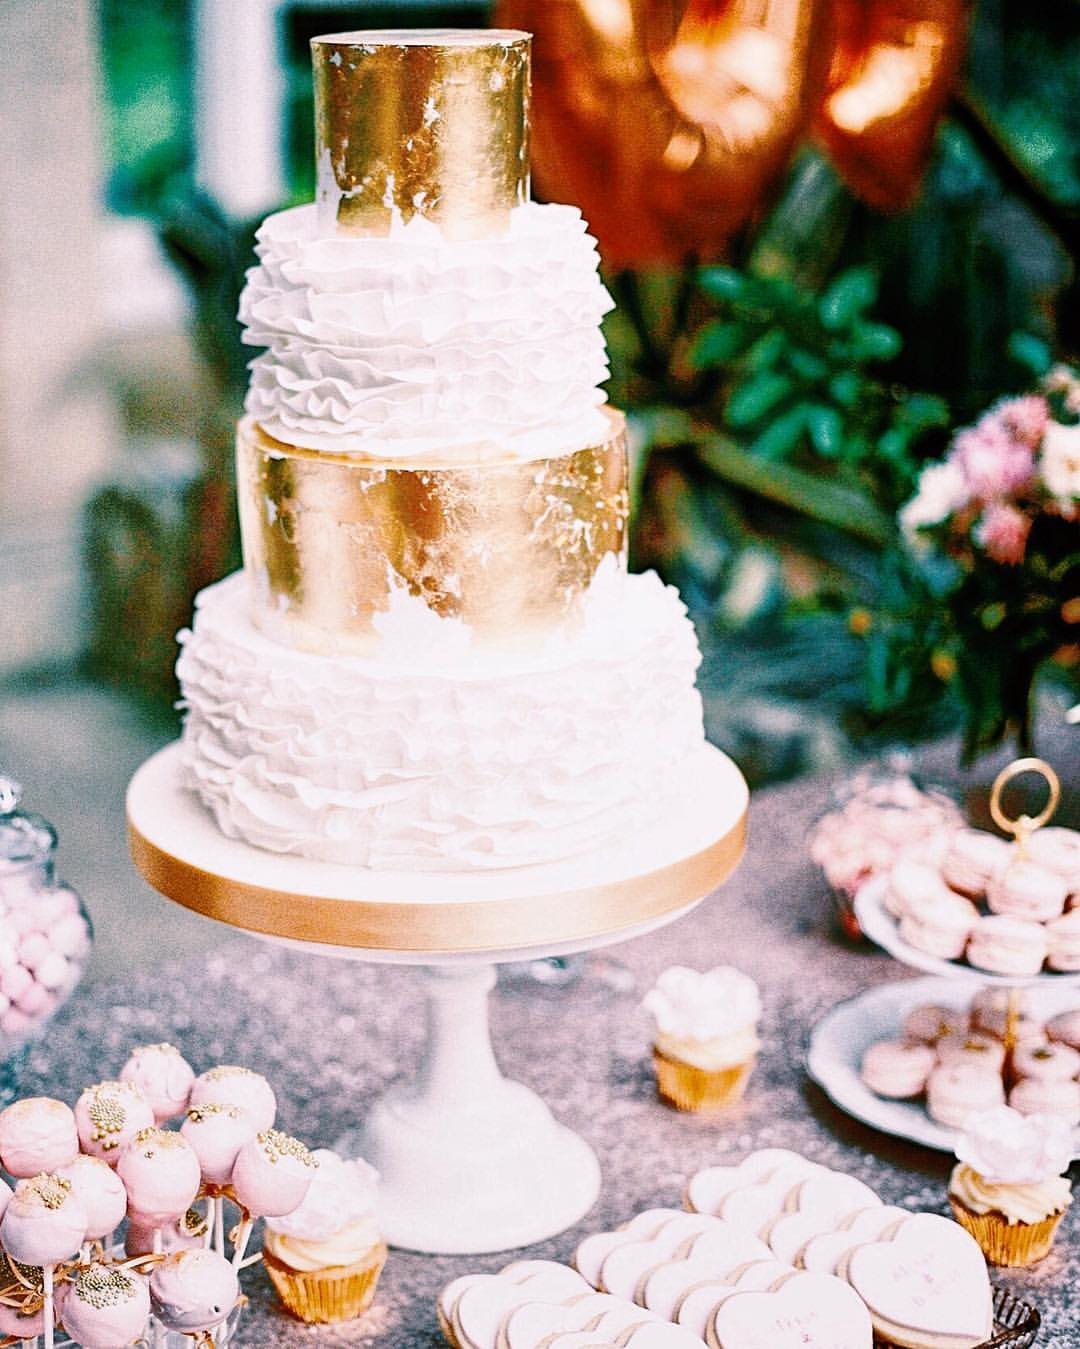 Distressed gold leaf and frilly ruffles give this wedding cake texture, set up as part of a dessert table in West London's Syon Park.